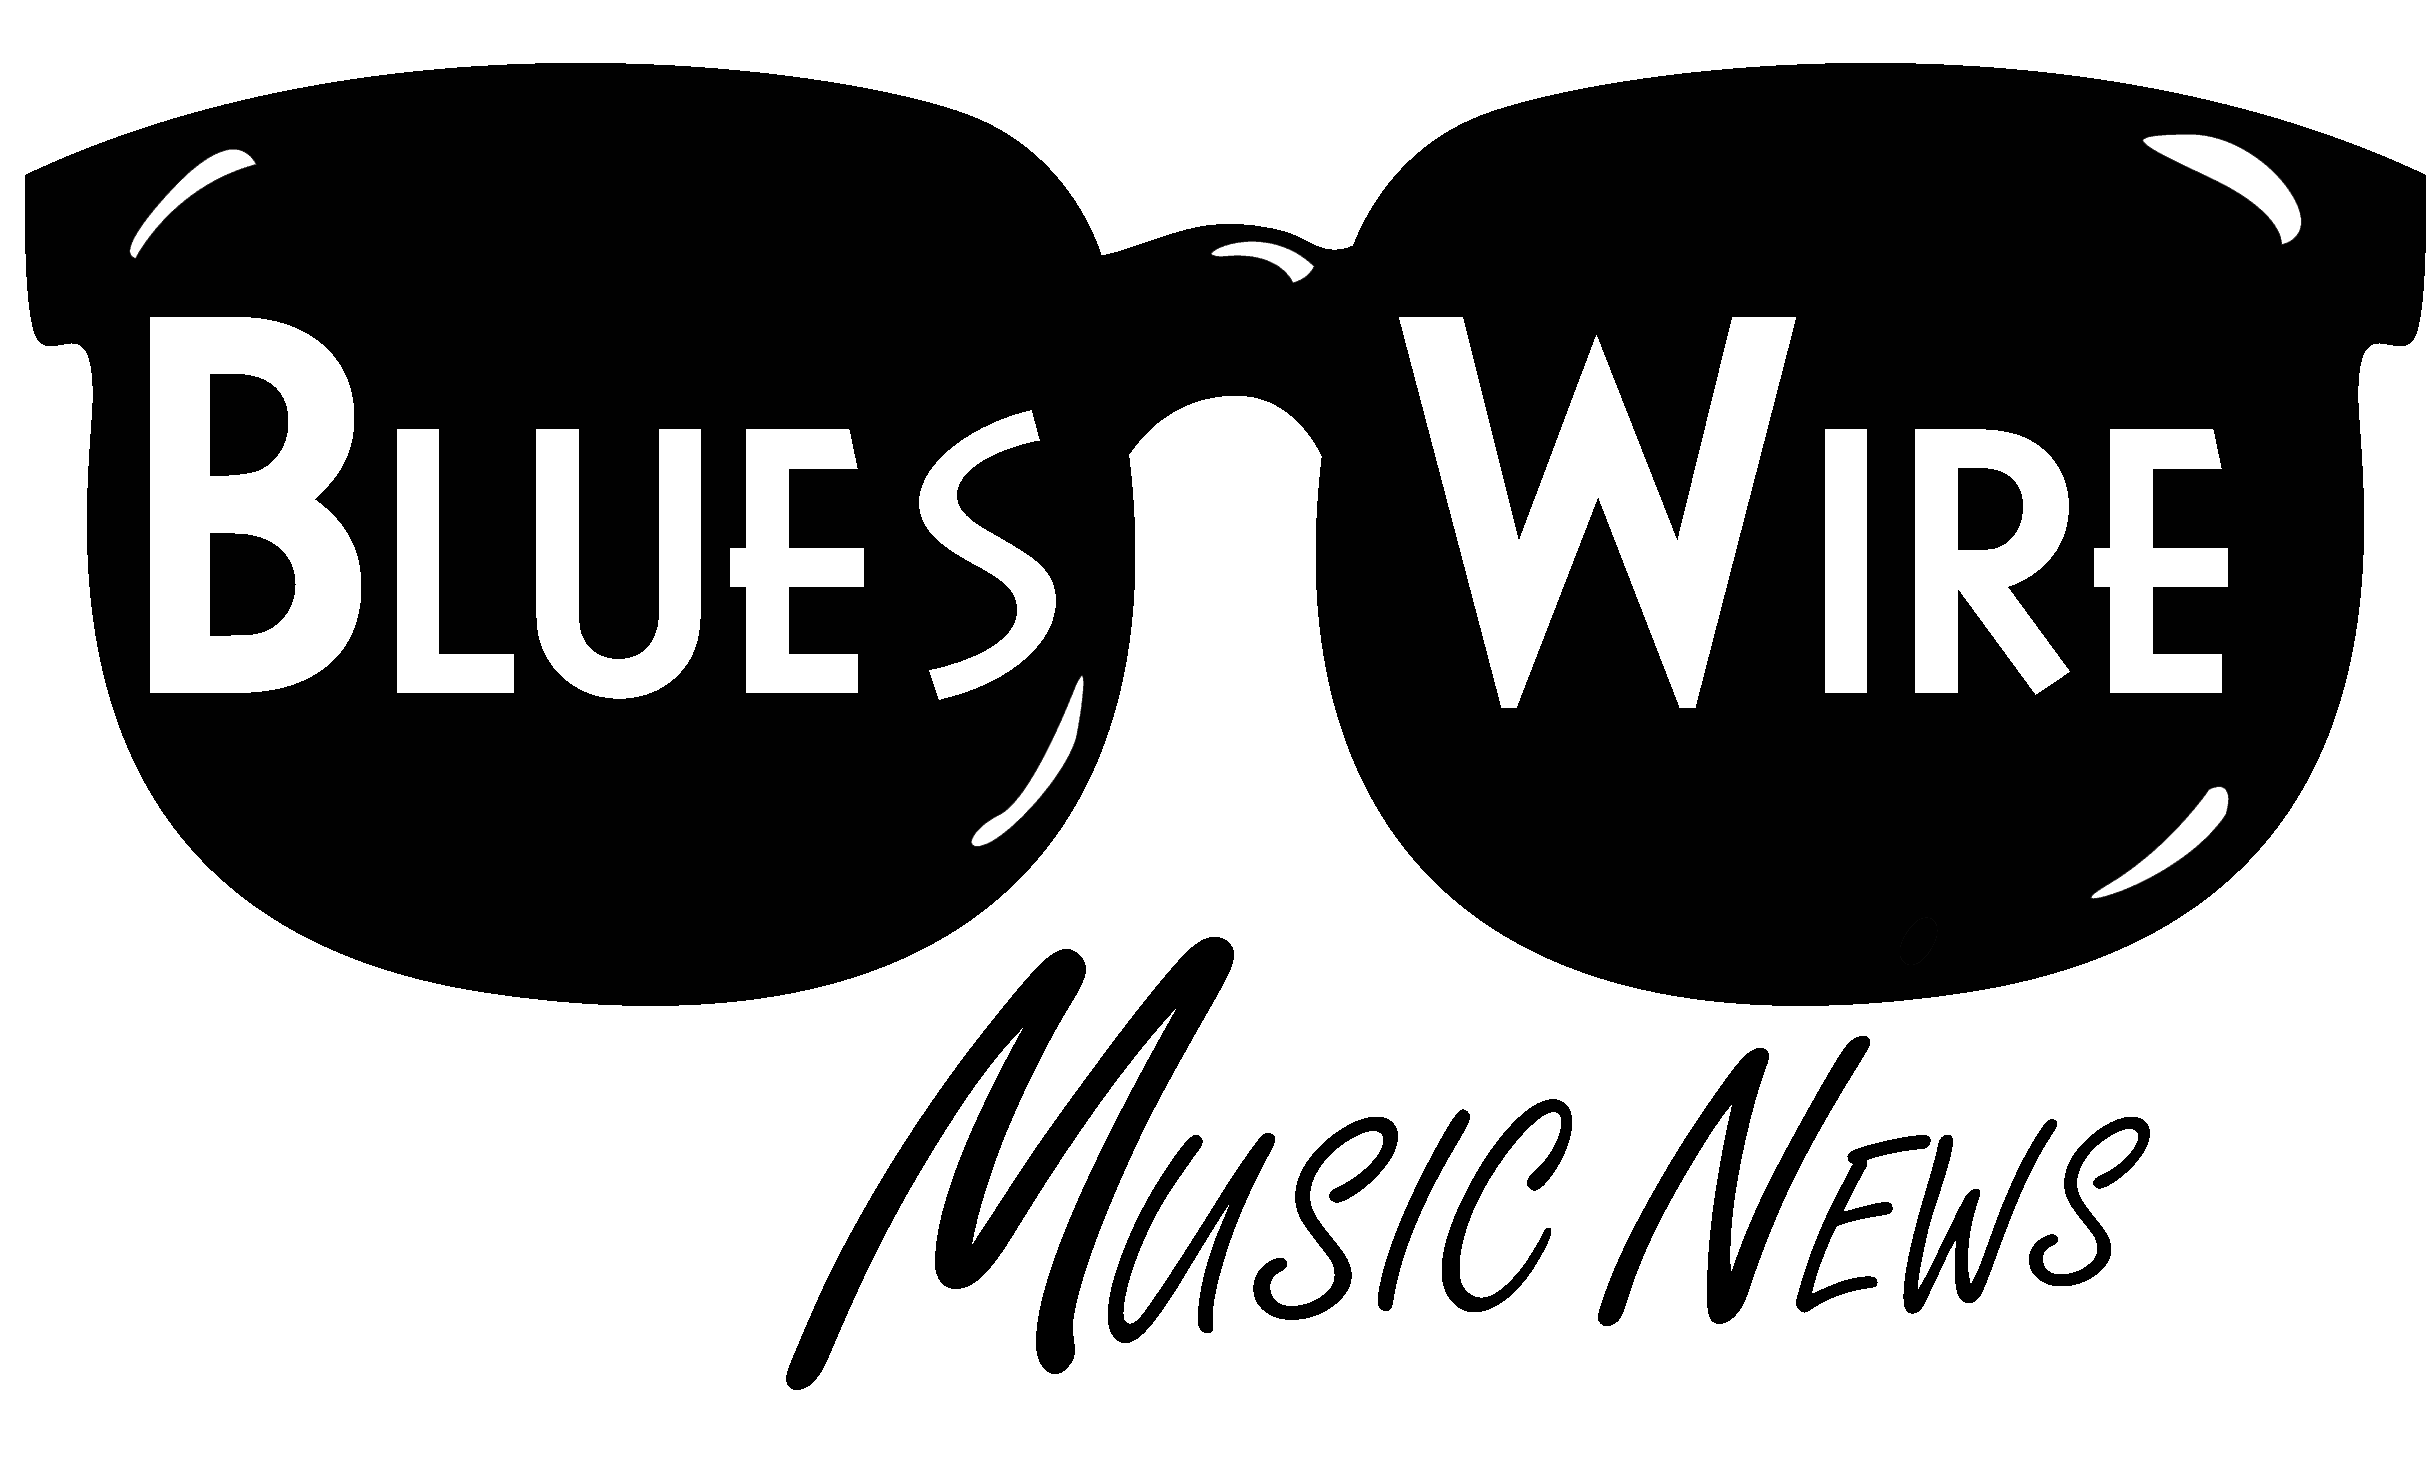 2017-blues-wire-music-news-b-w.png